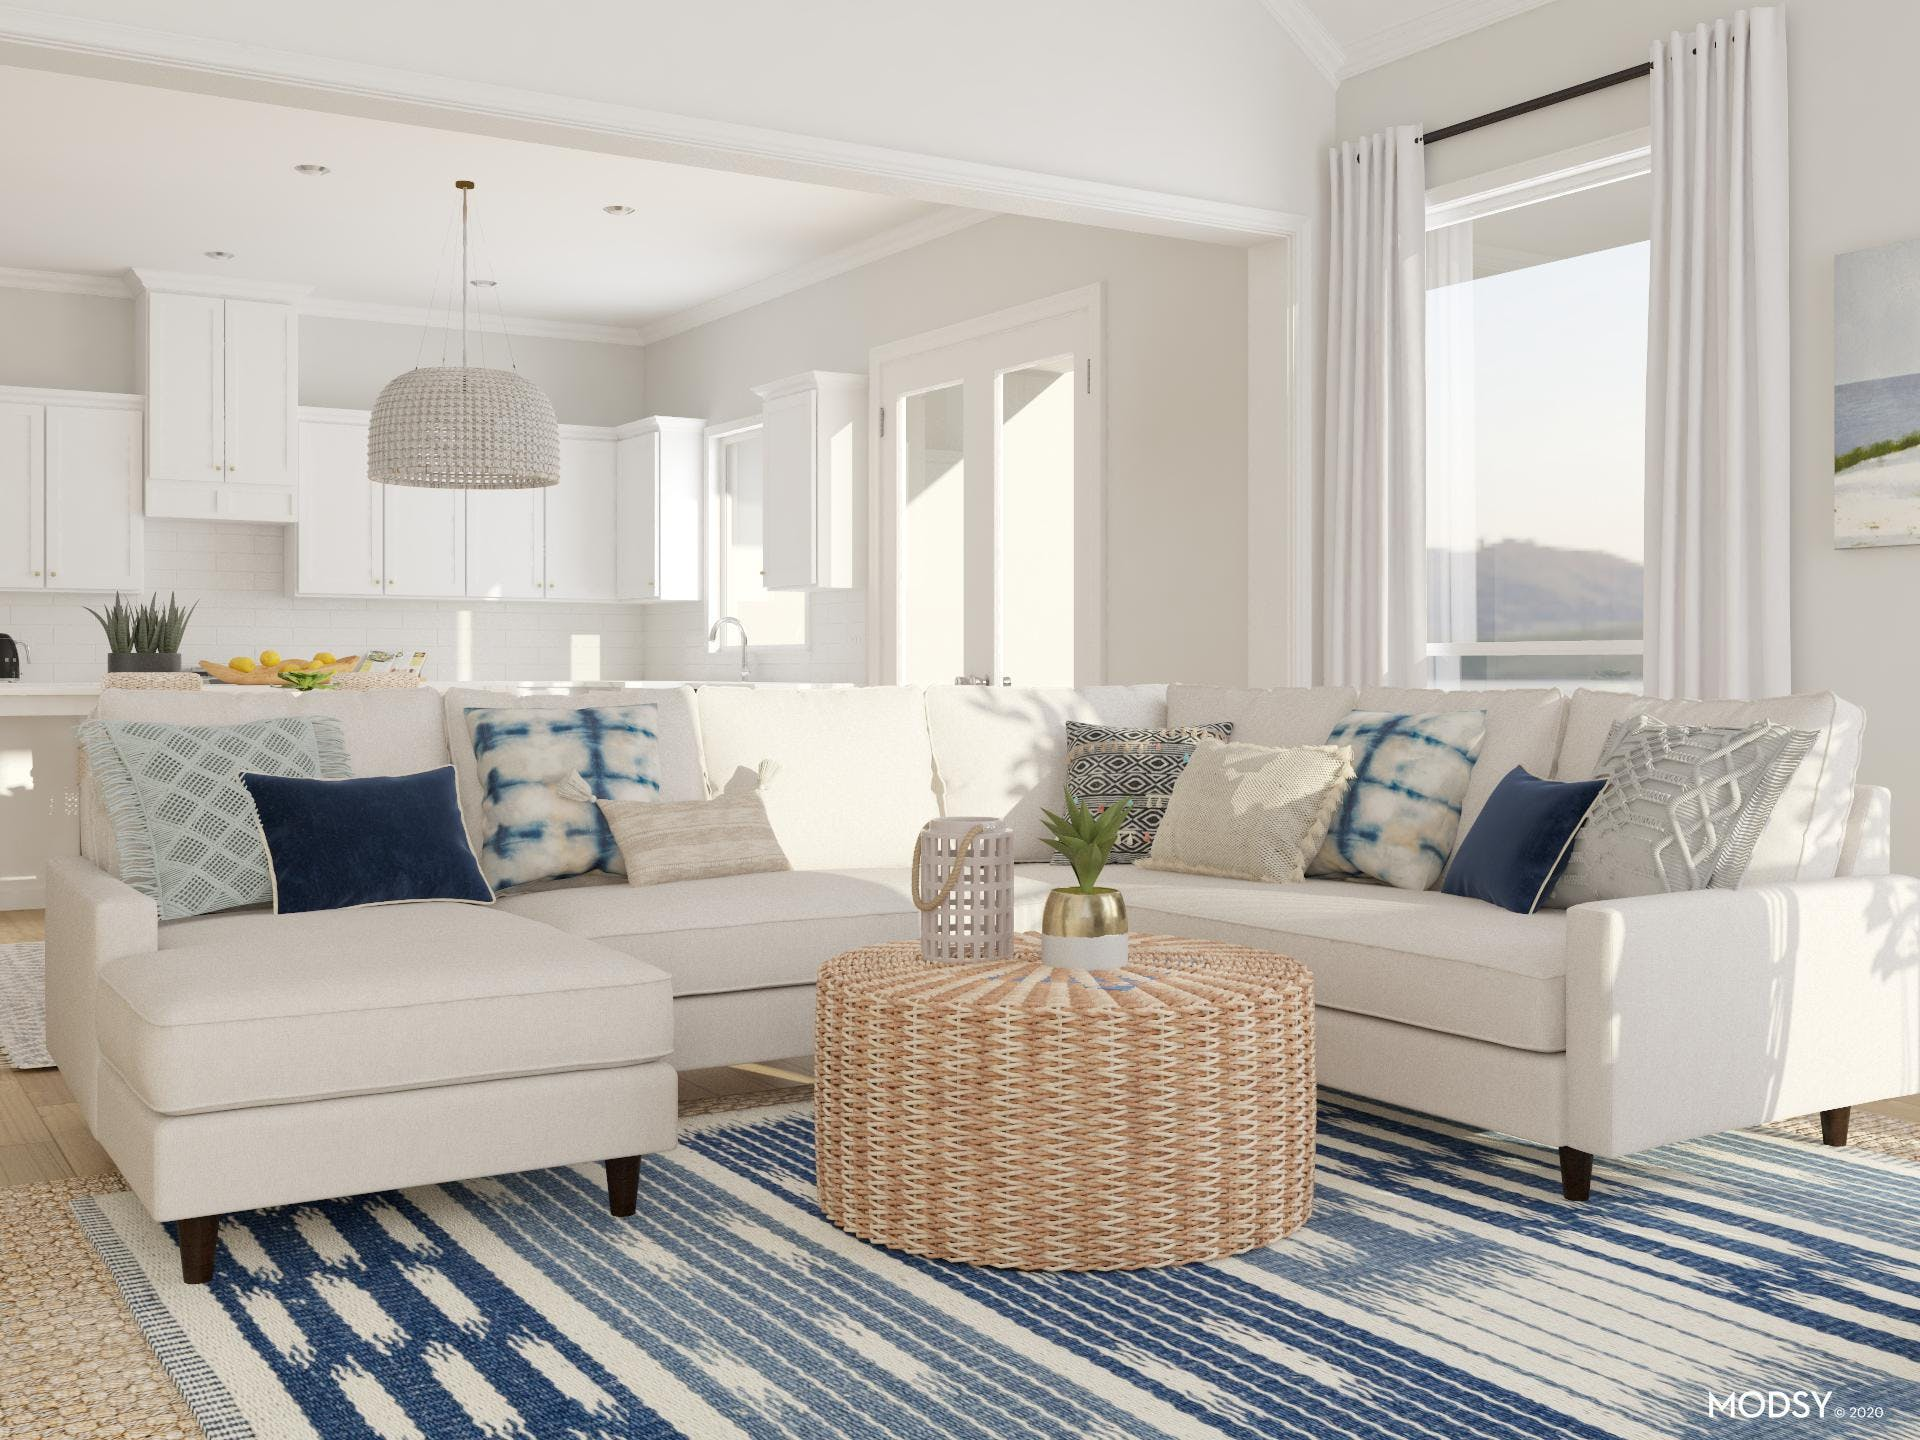 Sensational Sectional Awash in Watery Hues